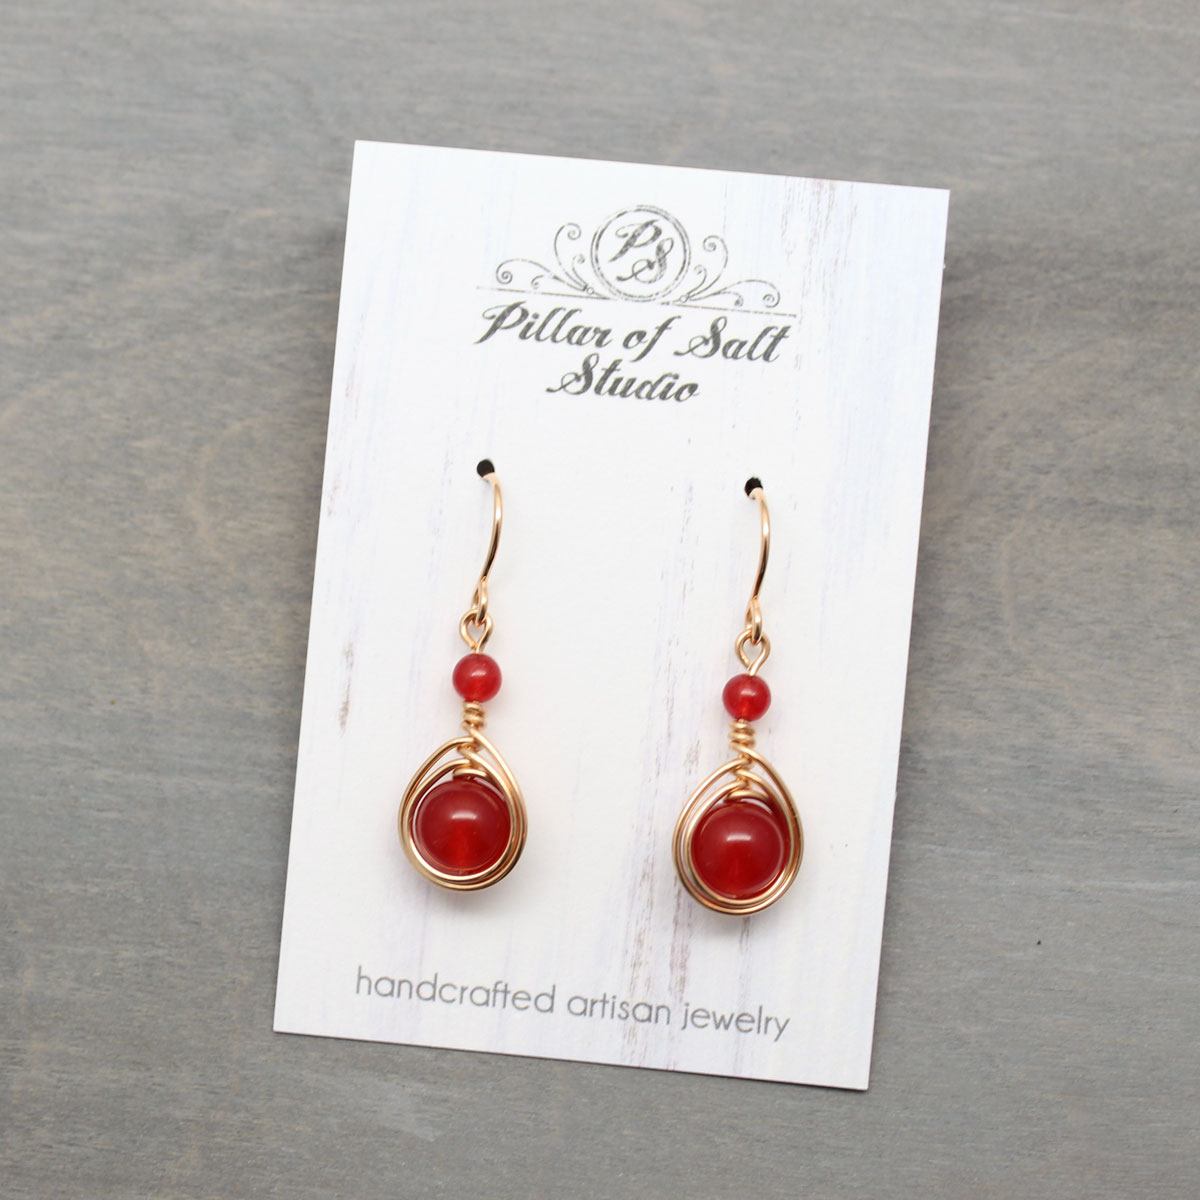 Rose Gold-filled earrings with red quartz stones